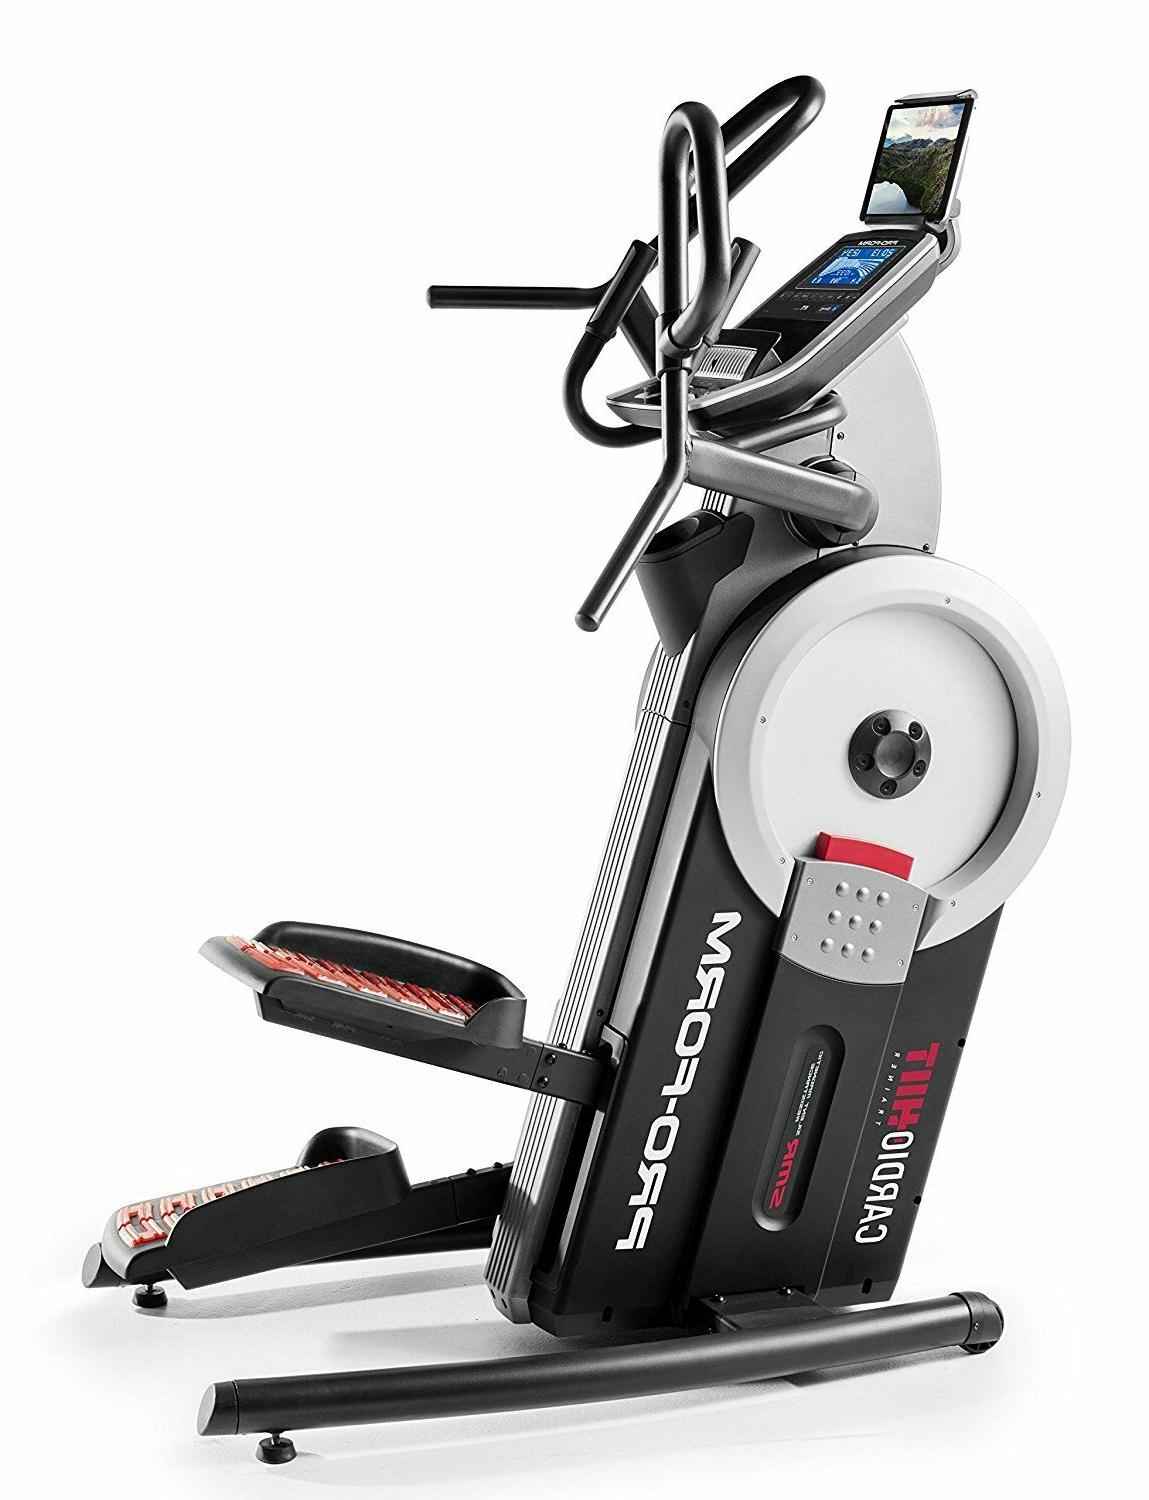 ProForm Elliptical Trainer,Exercise,PFEL09915 in-house Delivery,New